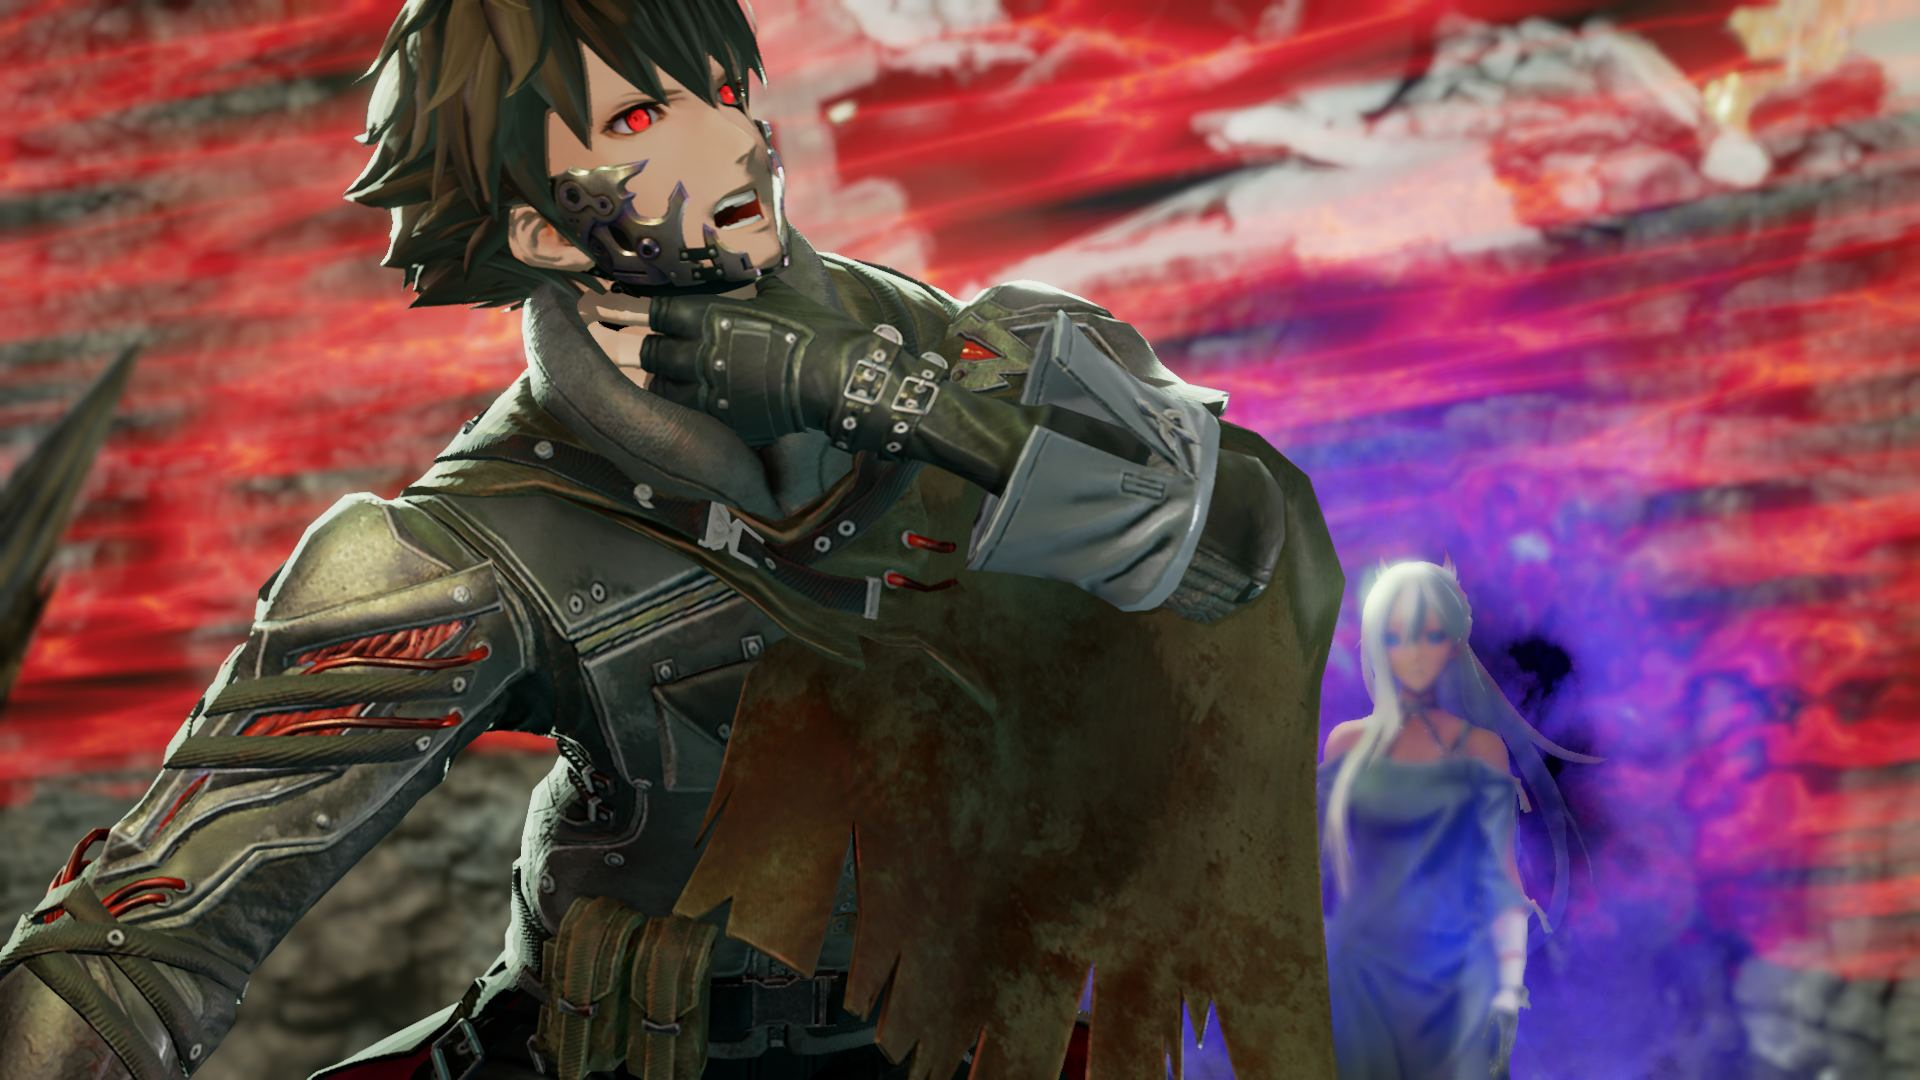 Code Vein: New trailers show Blood Veil Ogre and Stinger in